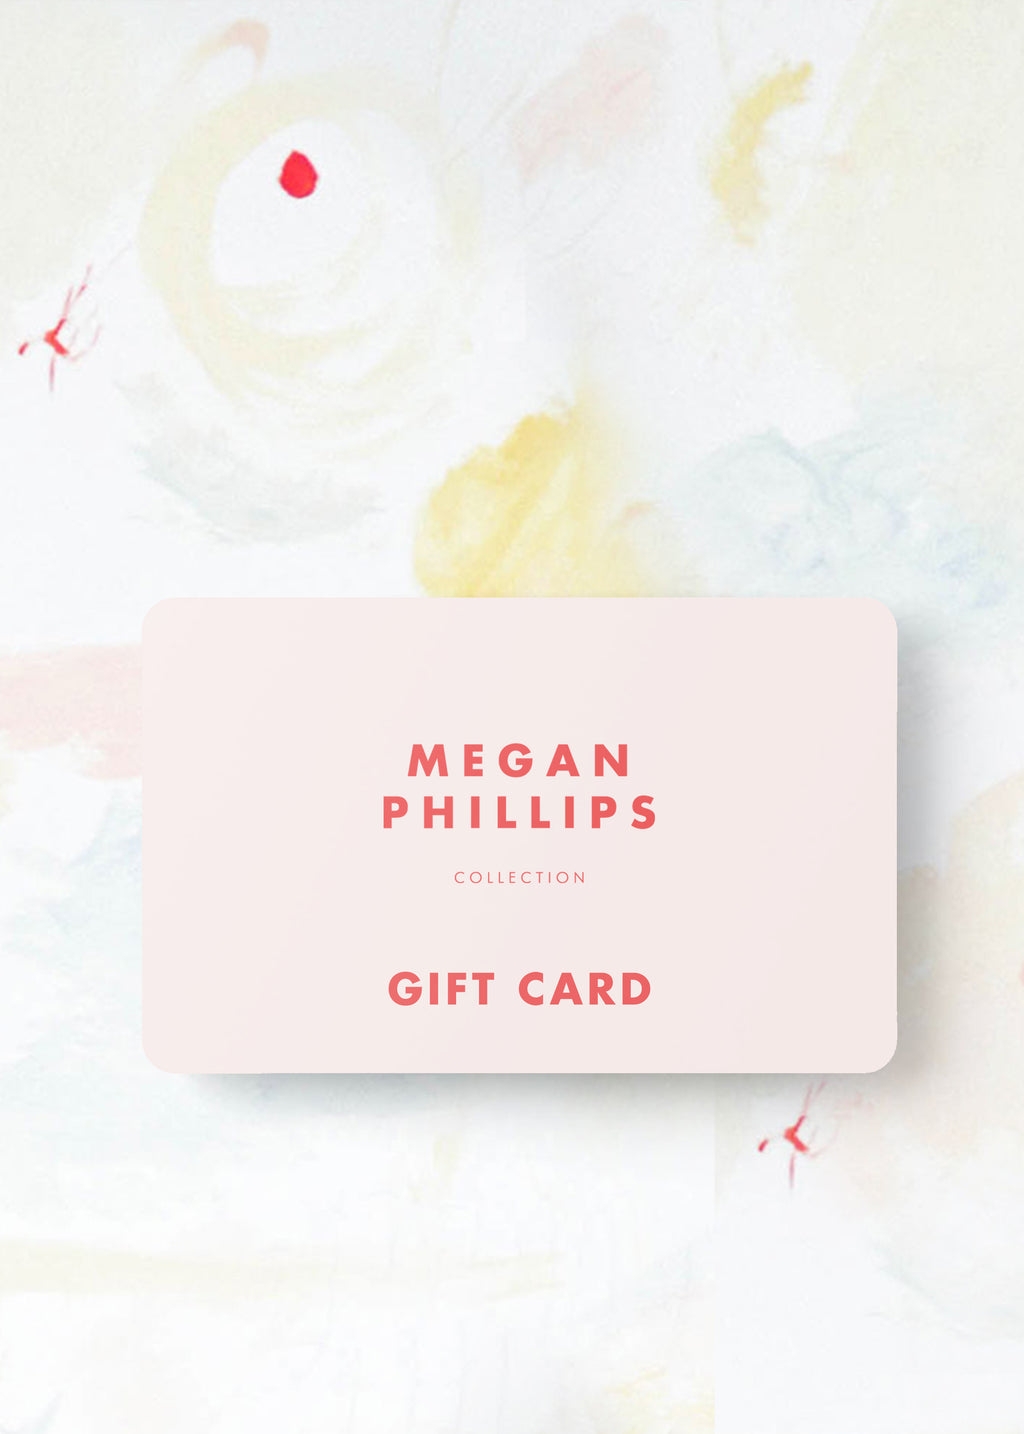 Megan Phillips Collection Gift Card